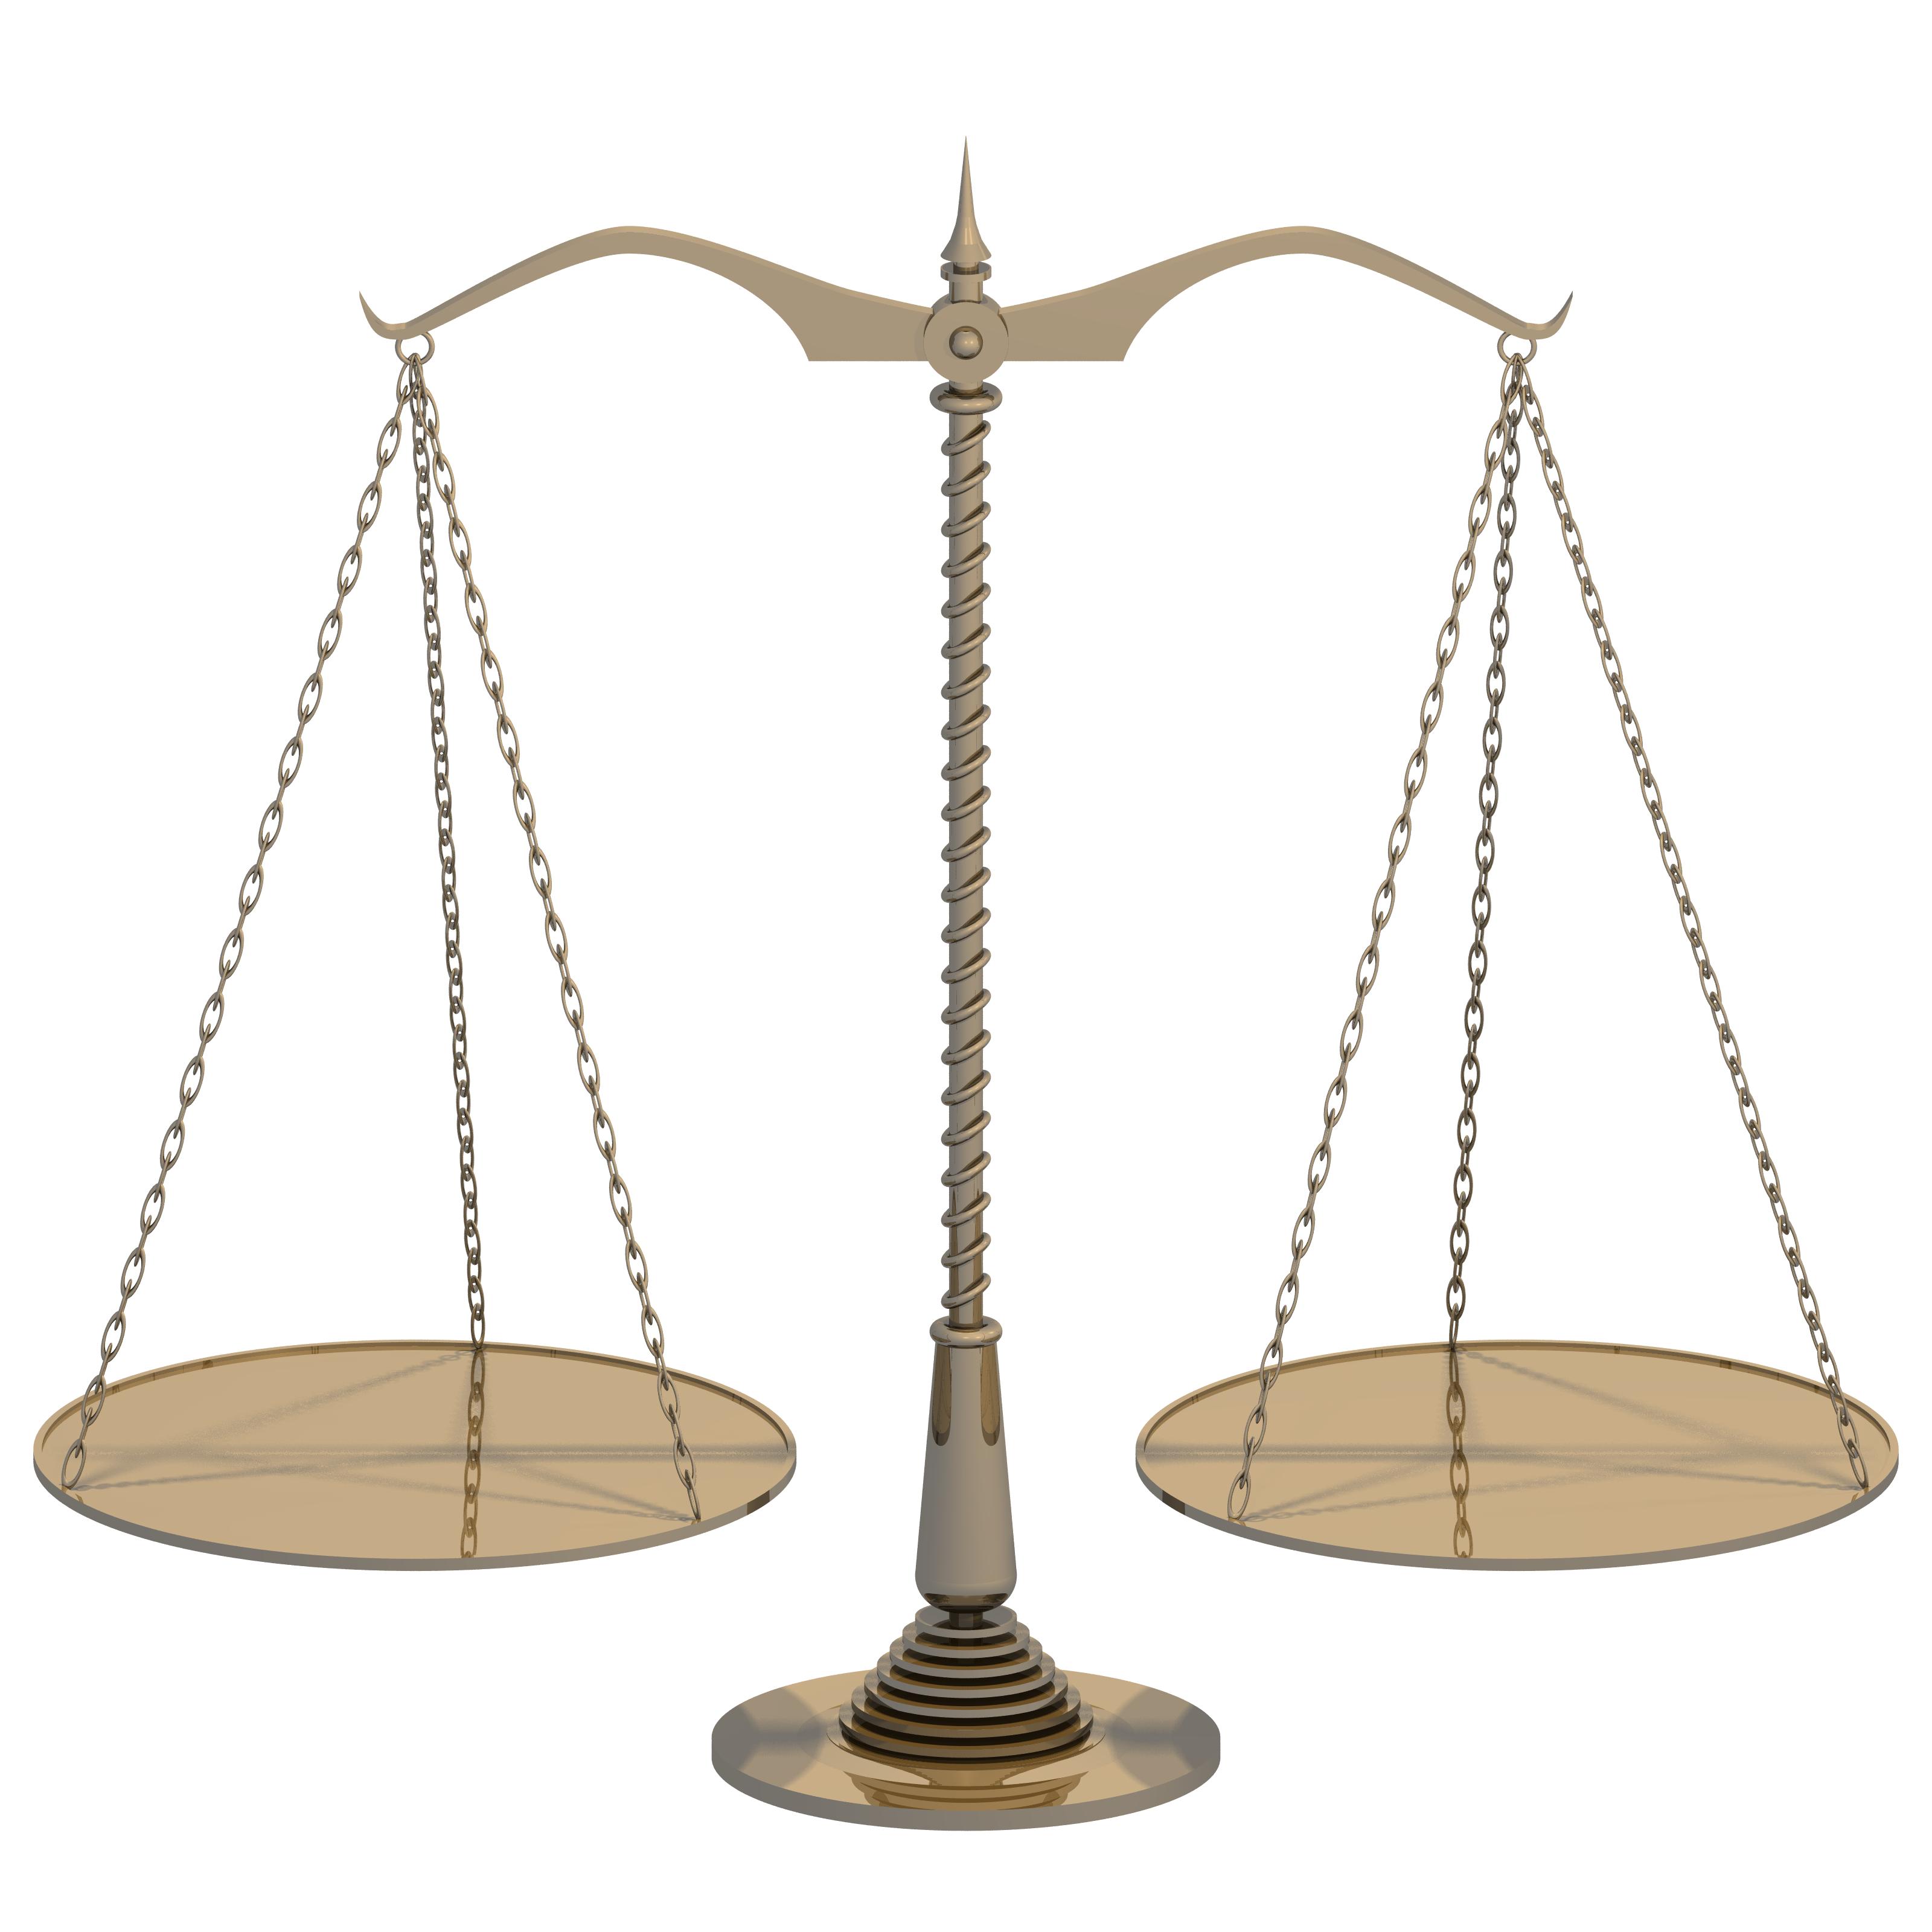 Science Balance Scale Clip Art Images Of Balance Scales